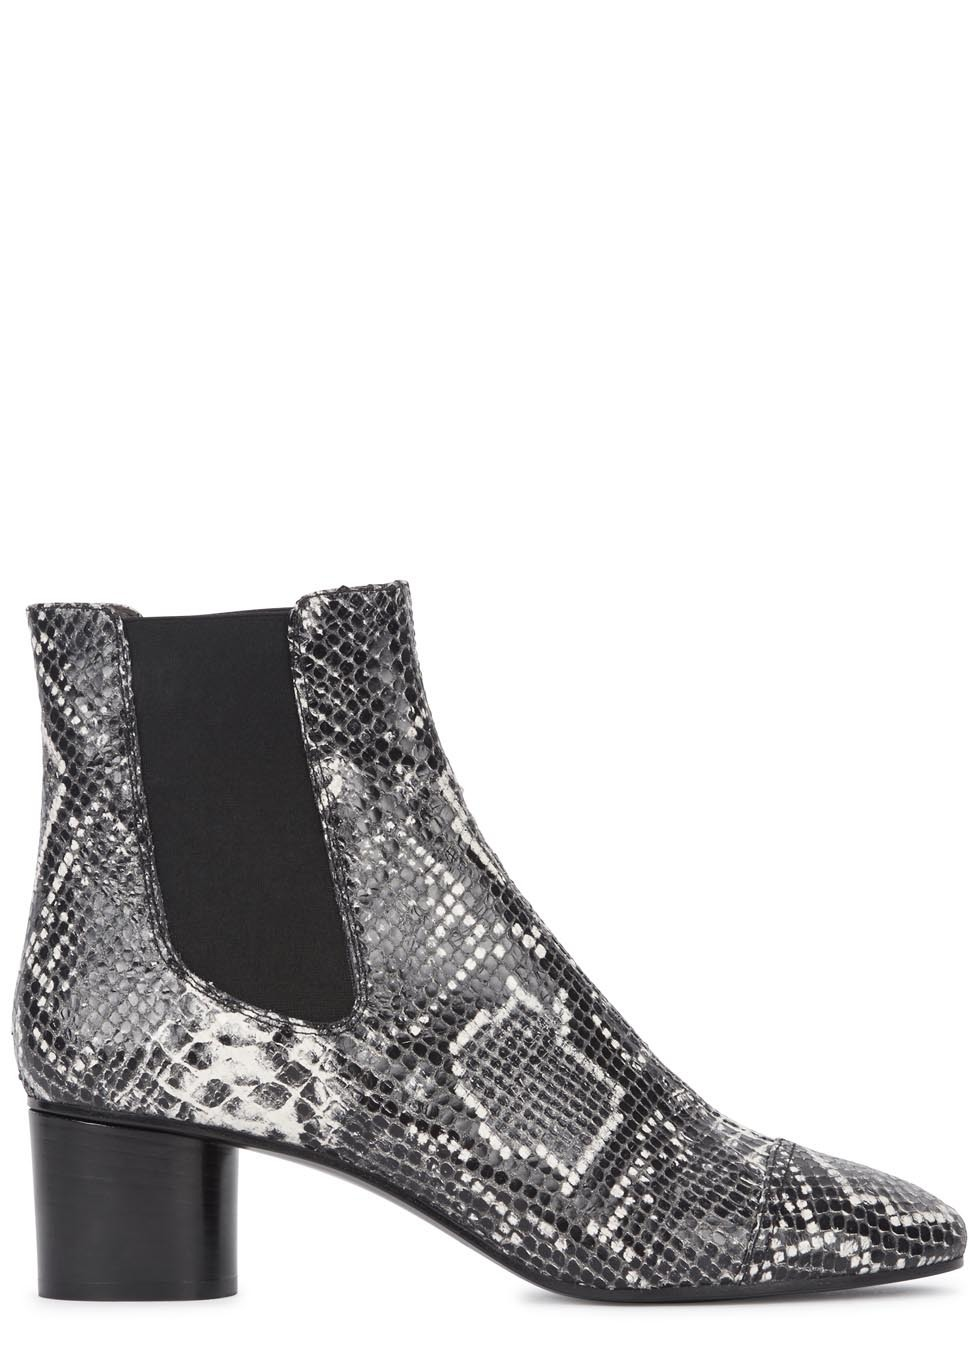 Danae Python Effect Leather Boots - secondary colour: charcoal; predominant colour: black; occasions: casual, creative work; material: leather; heel height: mid; heel: block; toe: pointed toe; boot length: ankle boot; style: standard; finish: plain; pattern: animal print; season: s/s 2015; wardrobe: highlight